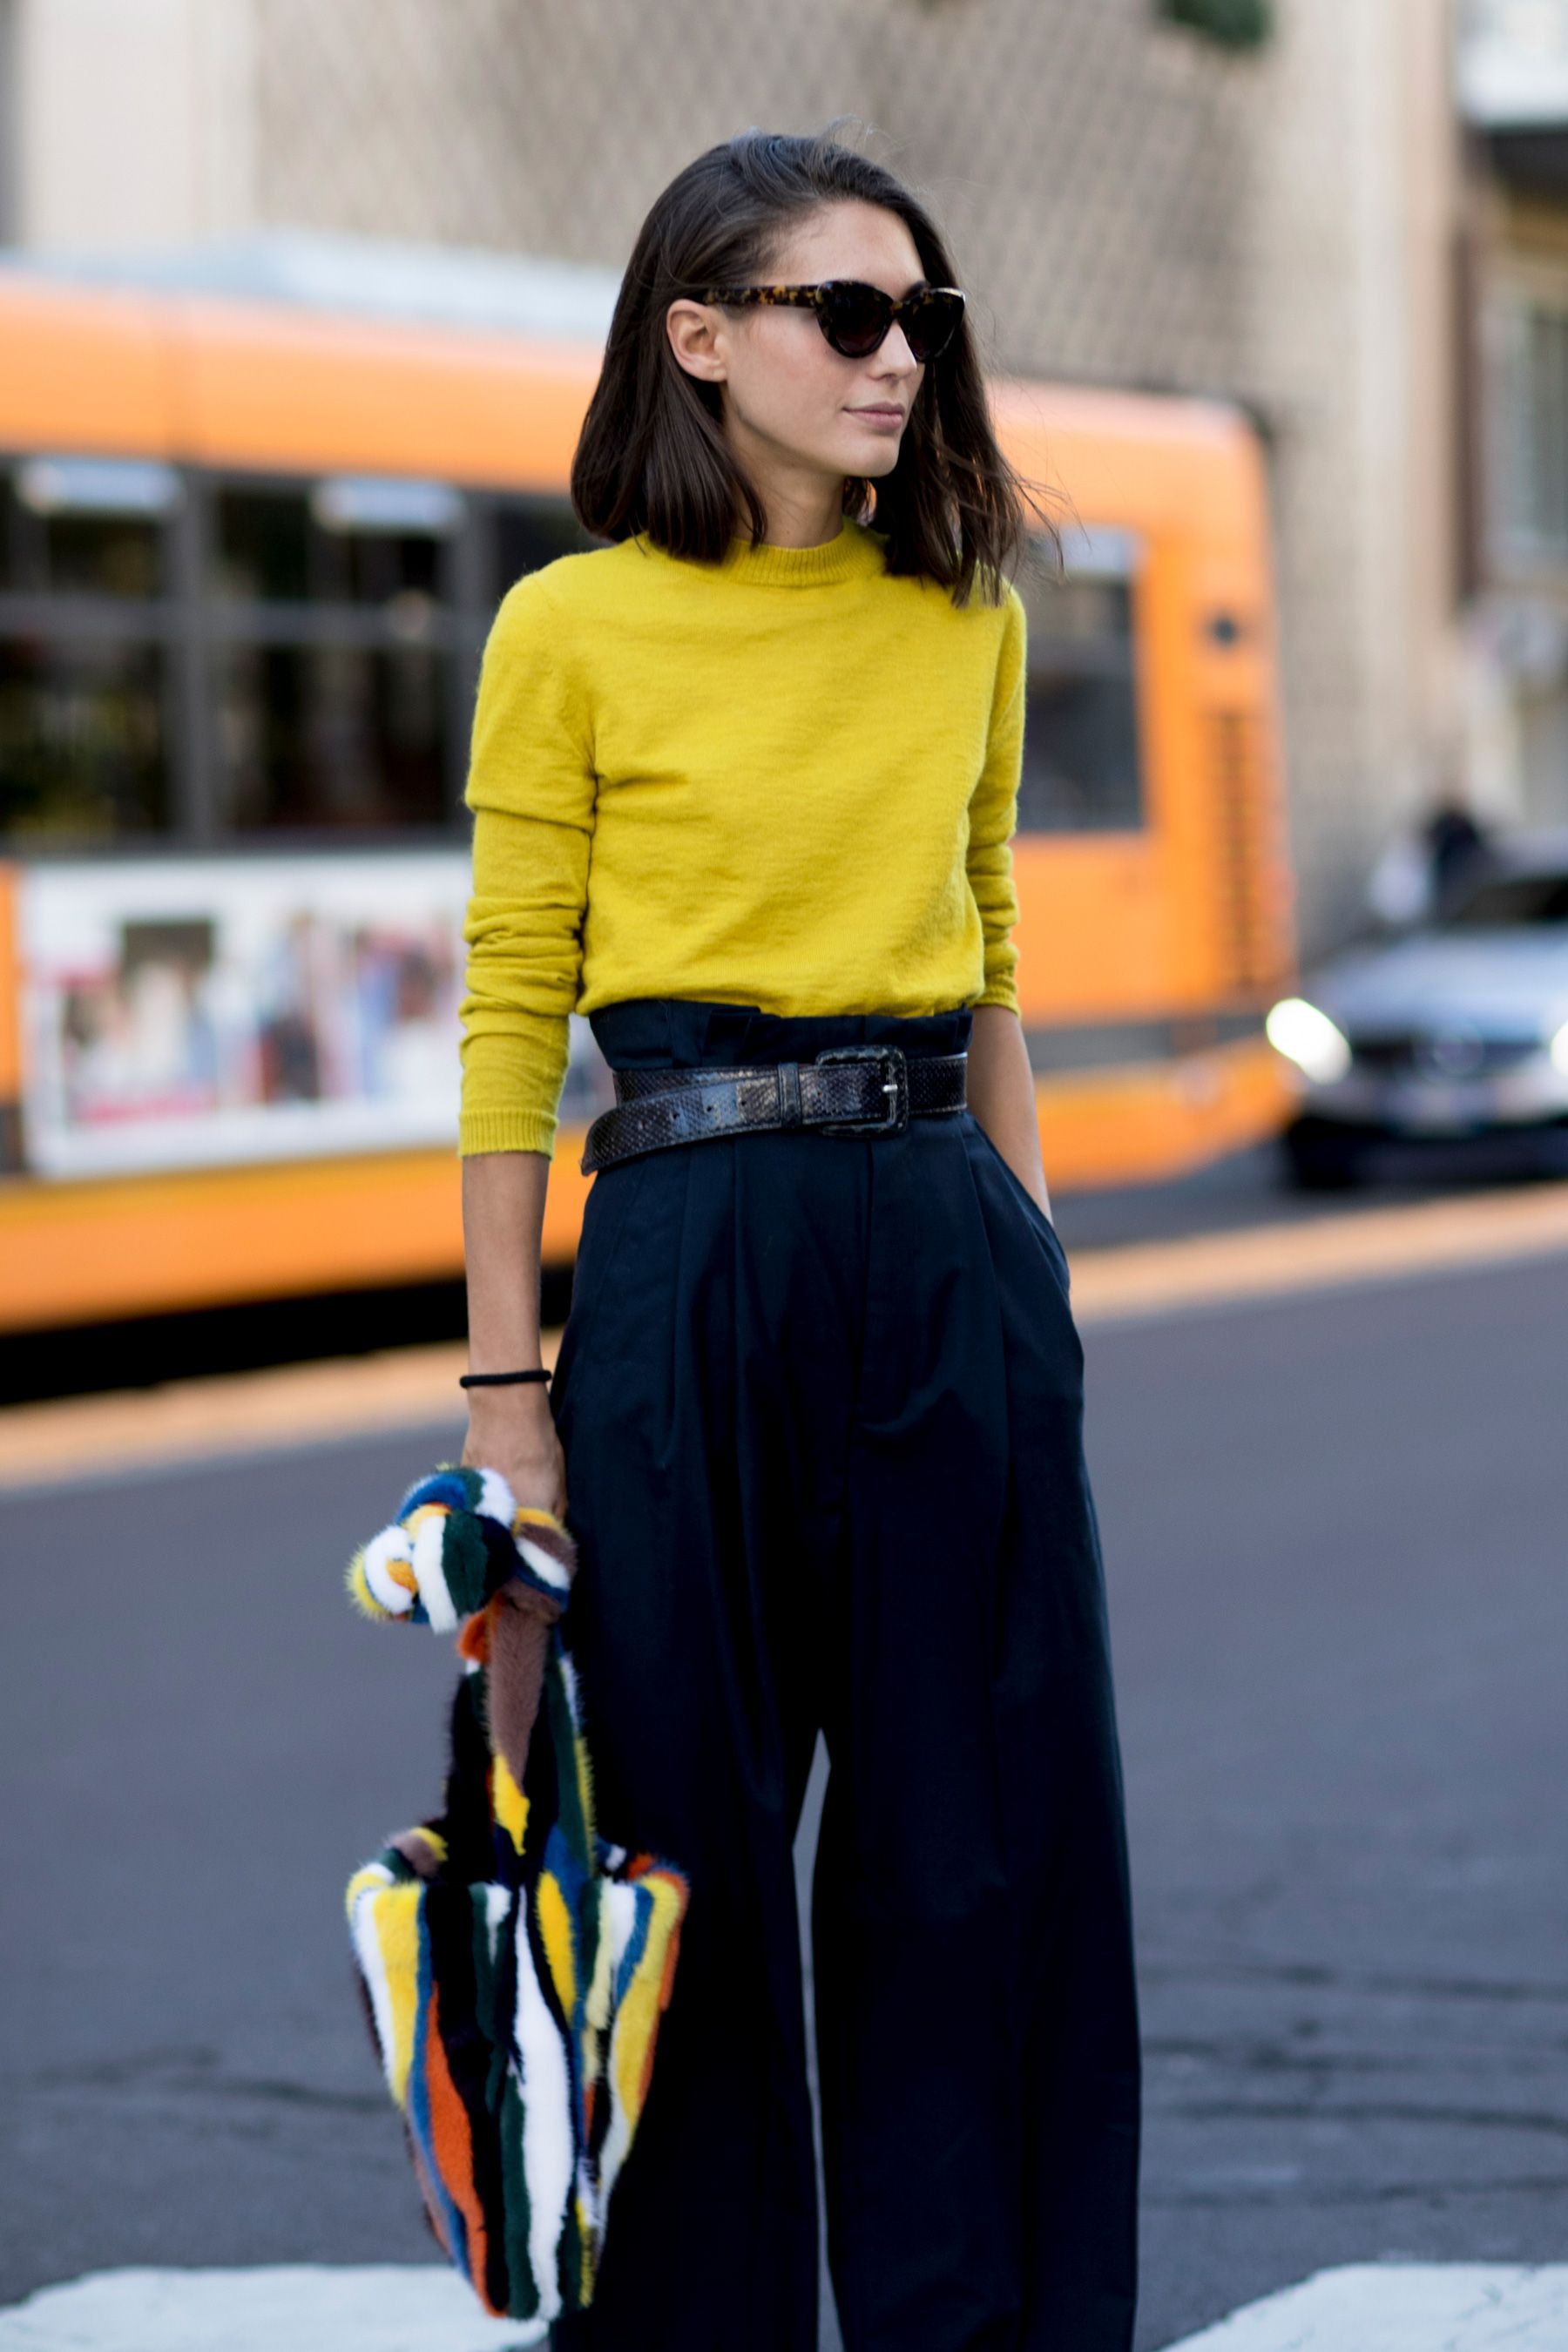 Milan Fashion Week Street Style Spring 2018 Day 2 High Waisted Trousers Paired With A Yellow Top